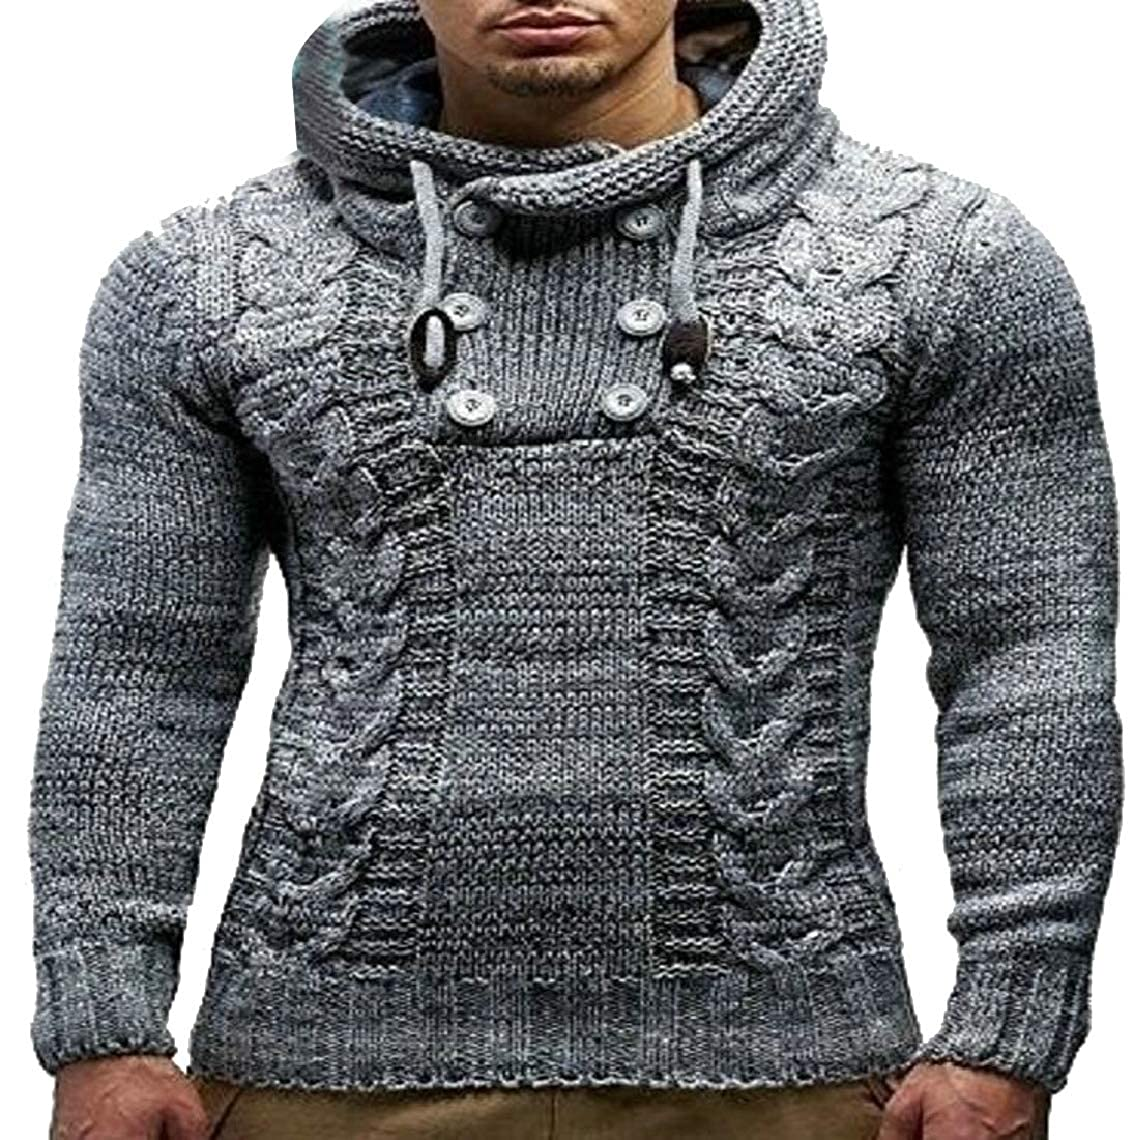 Jmwss QD Mens Casual Slim Basic Tops Knitted Thermal Turtleneck Pullover Sweater